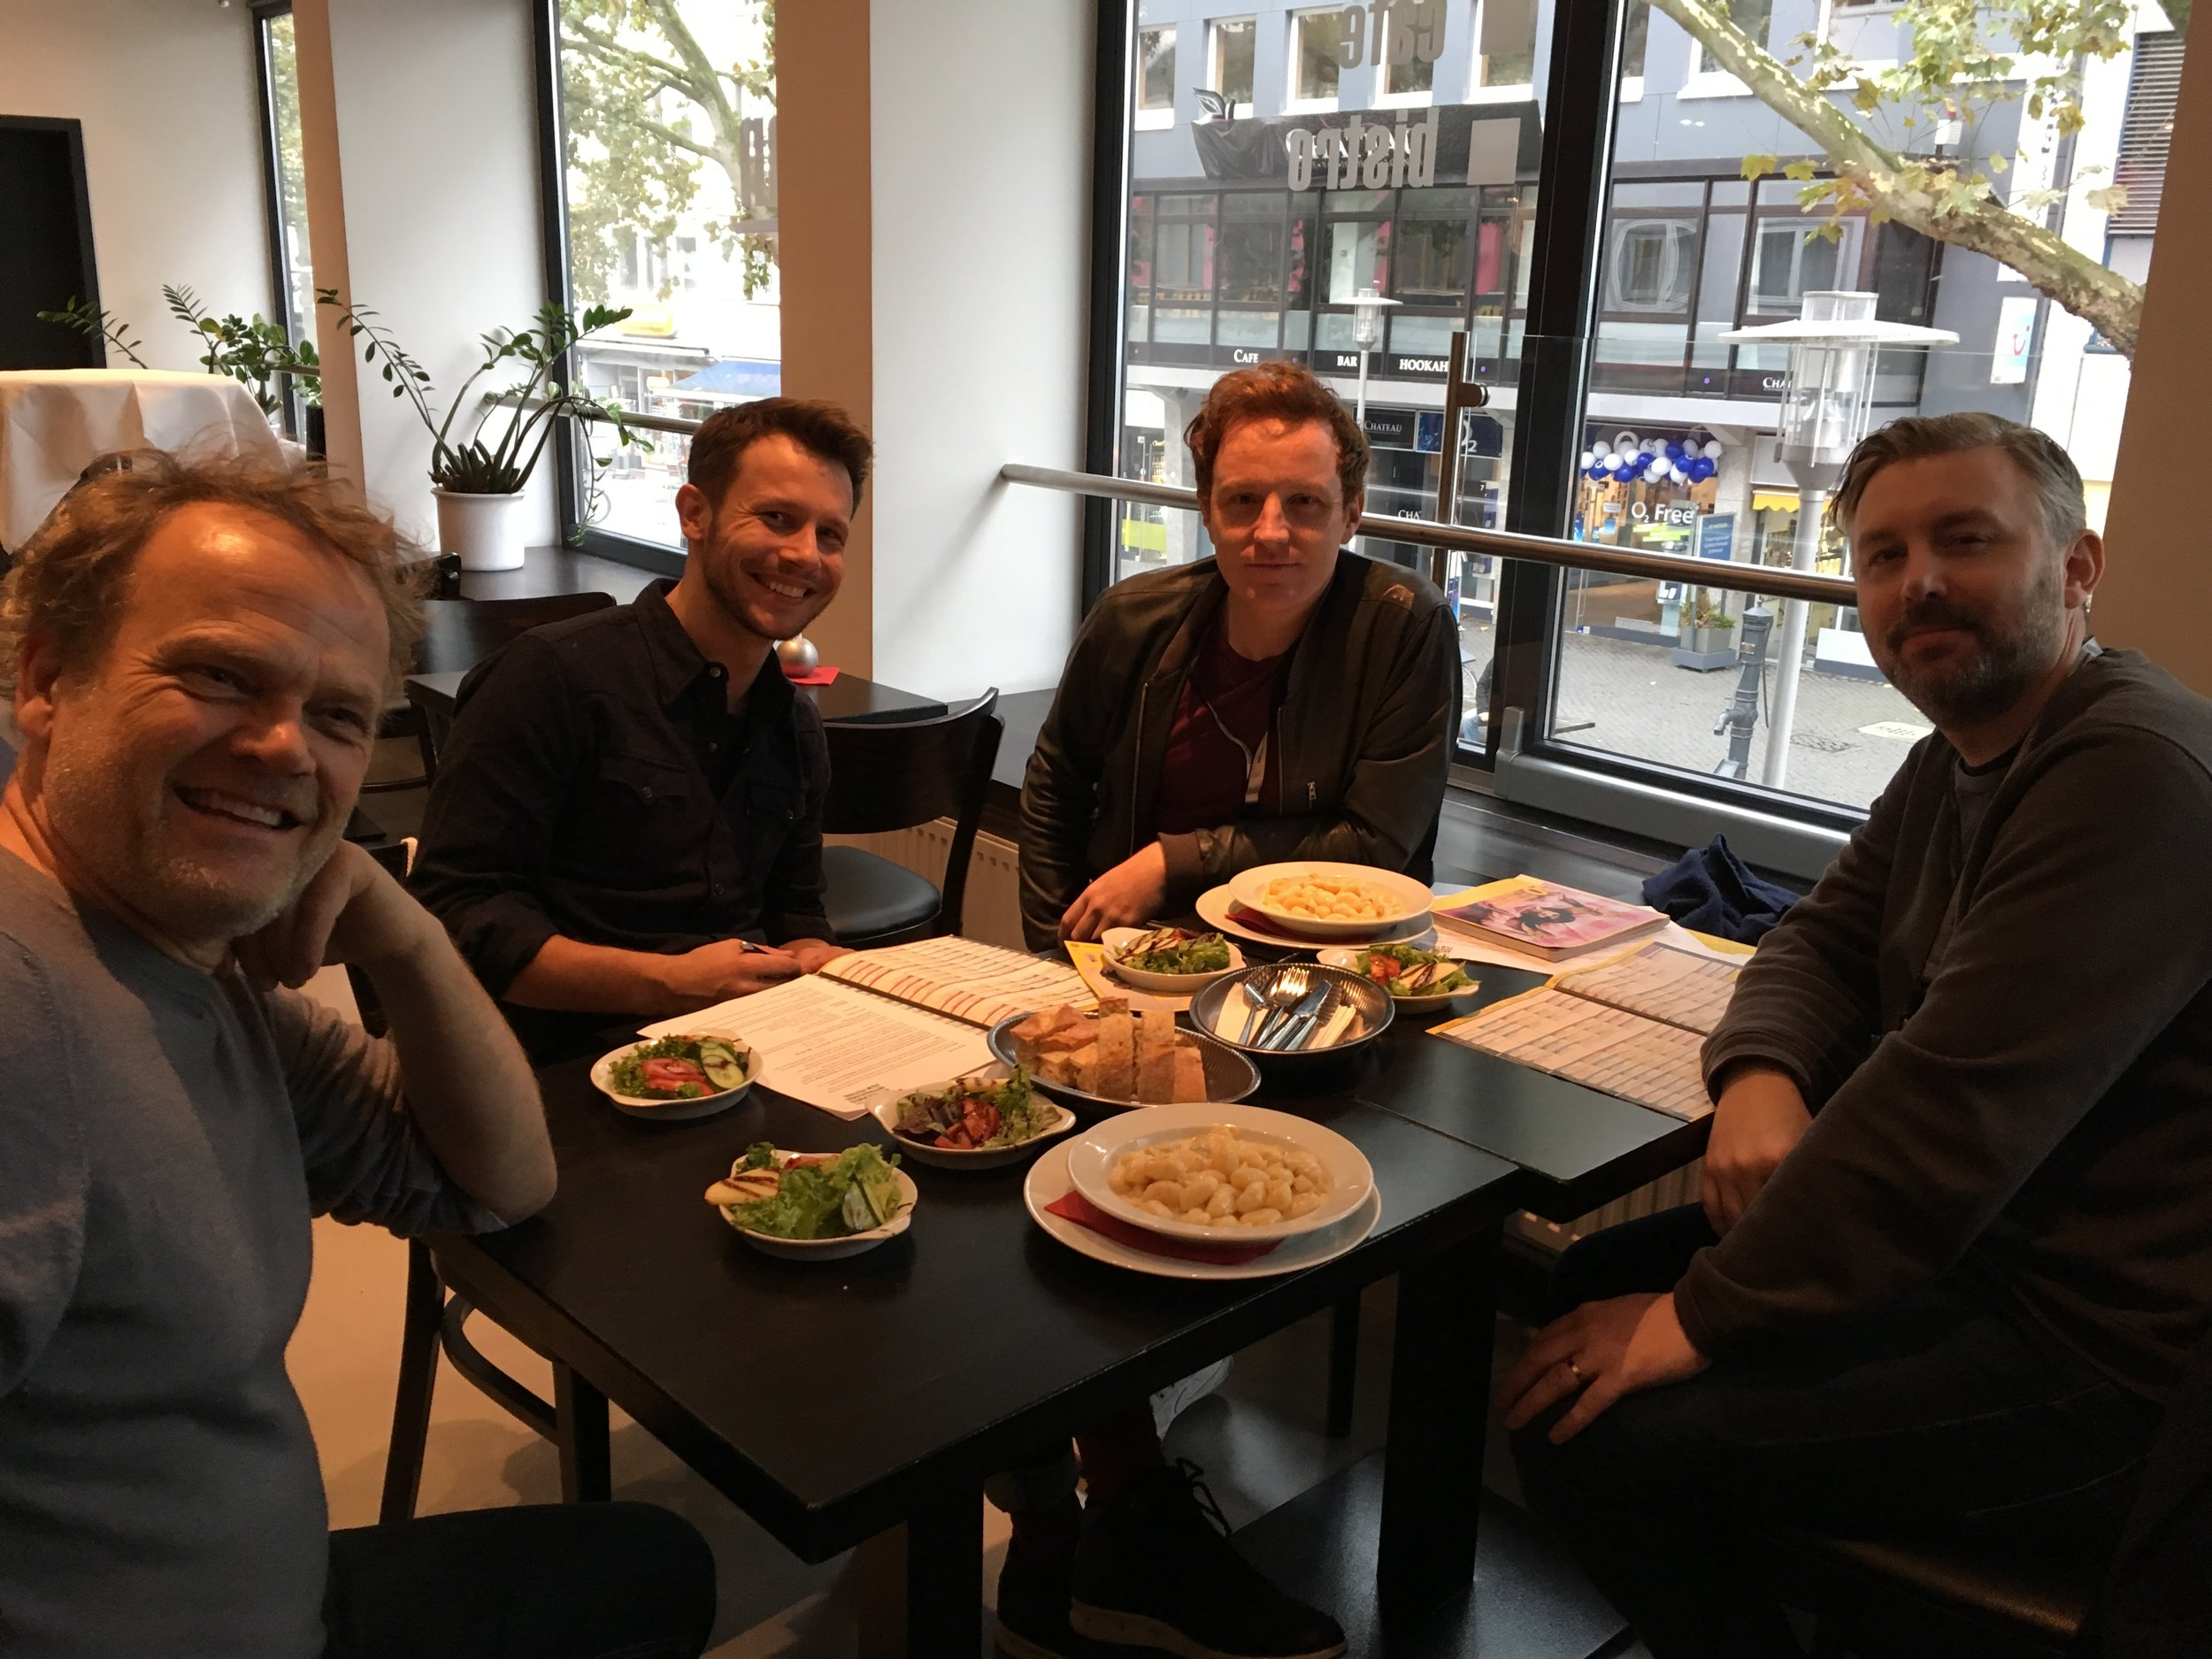 Actor Reinout Bussemaker, Mateusz, director Matthew Jones and producer M J McMahon